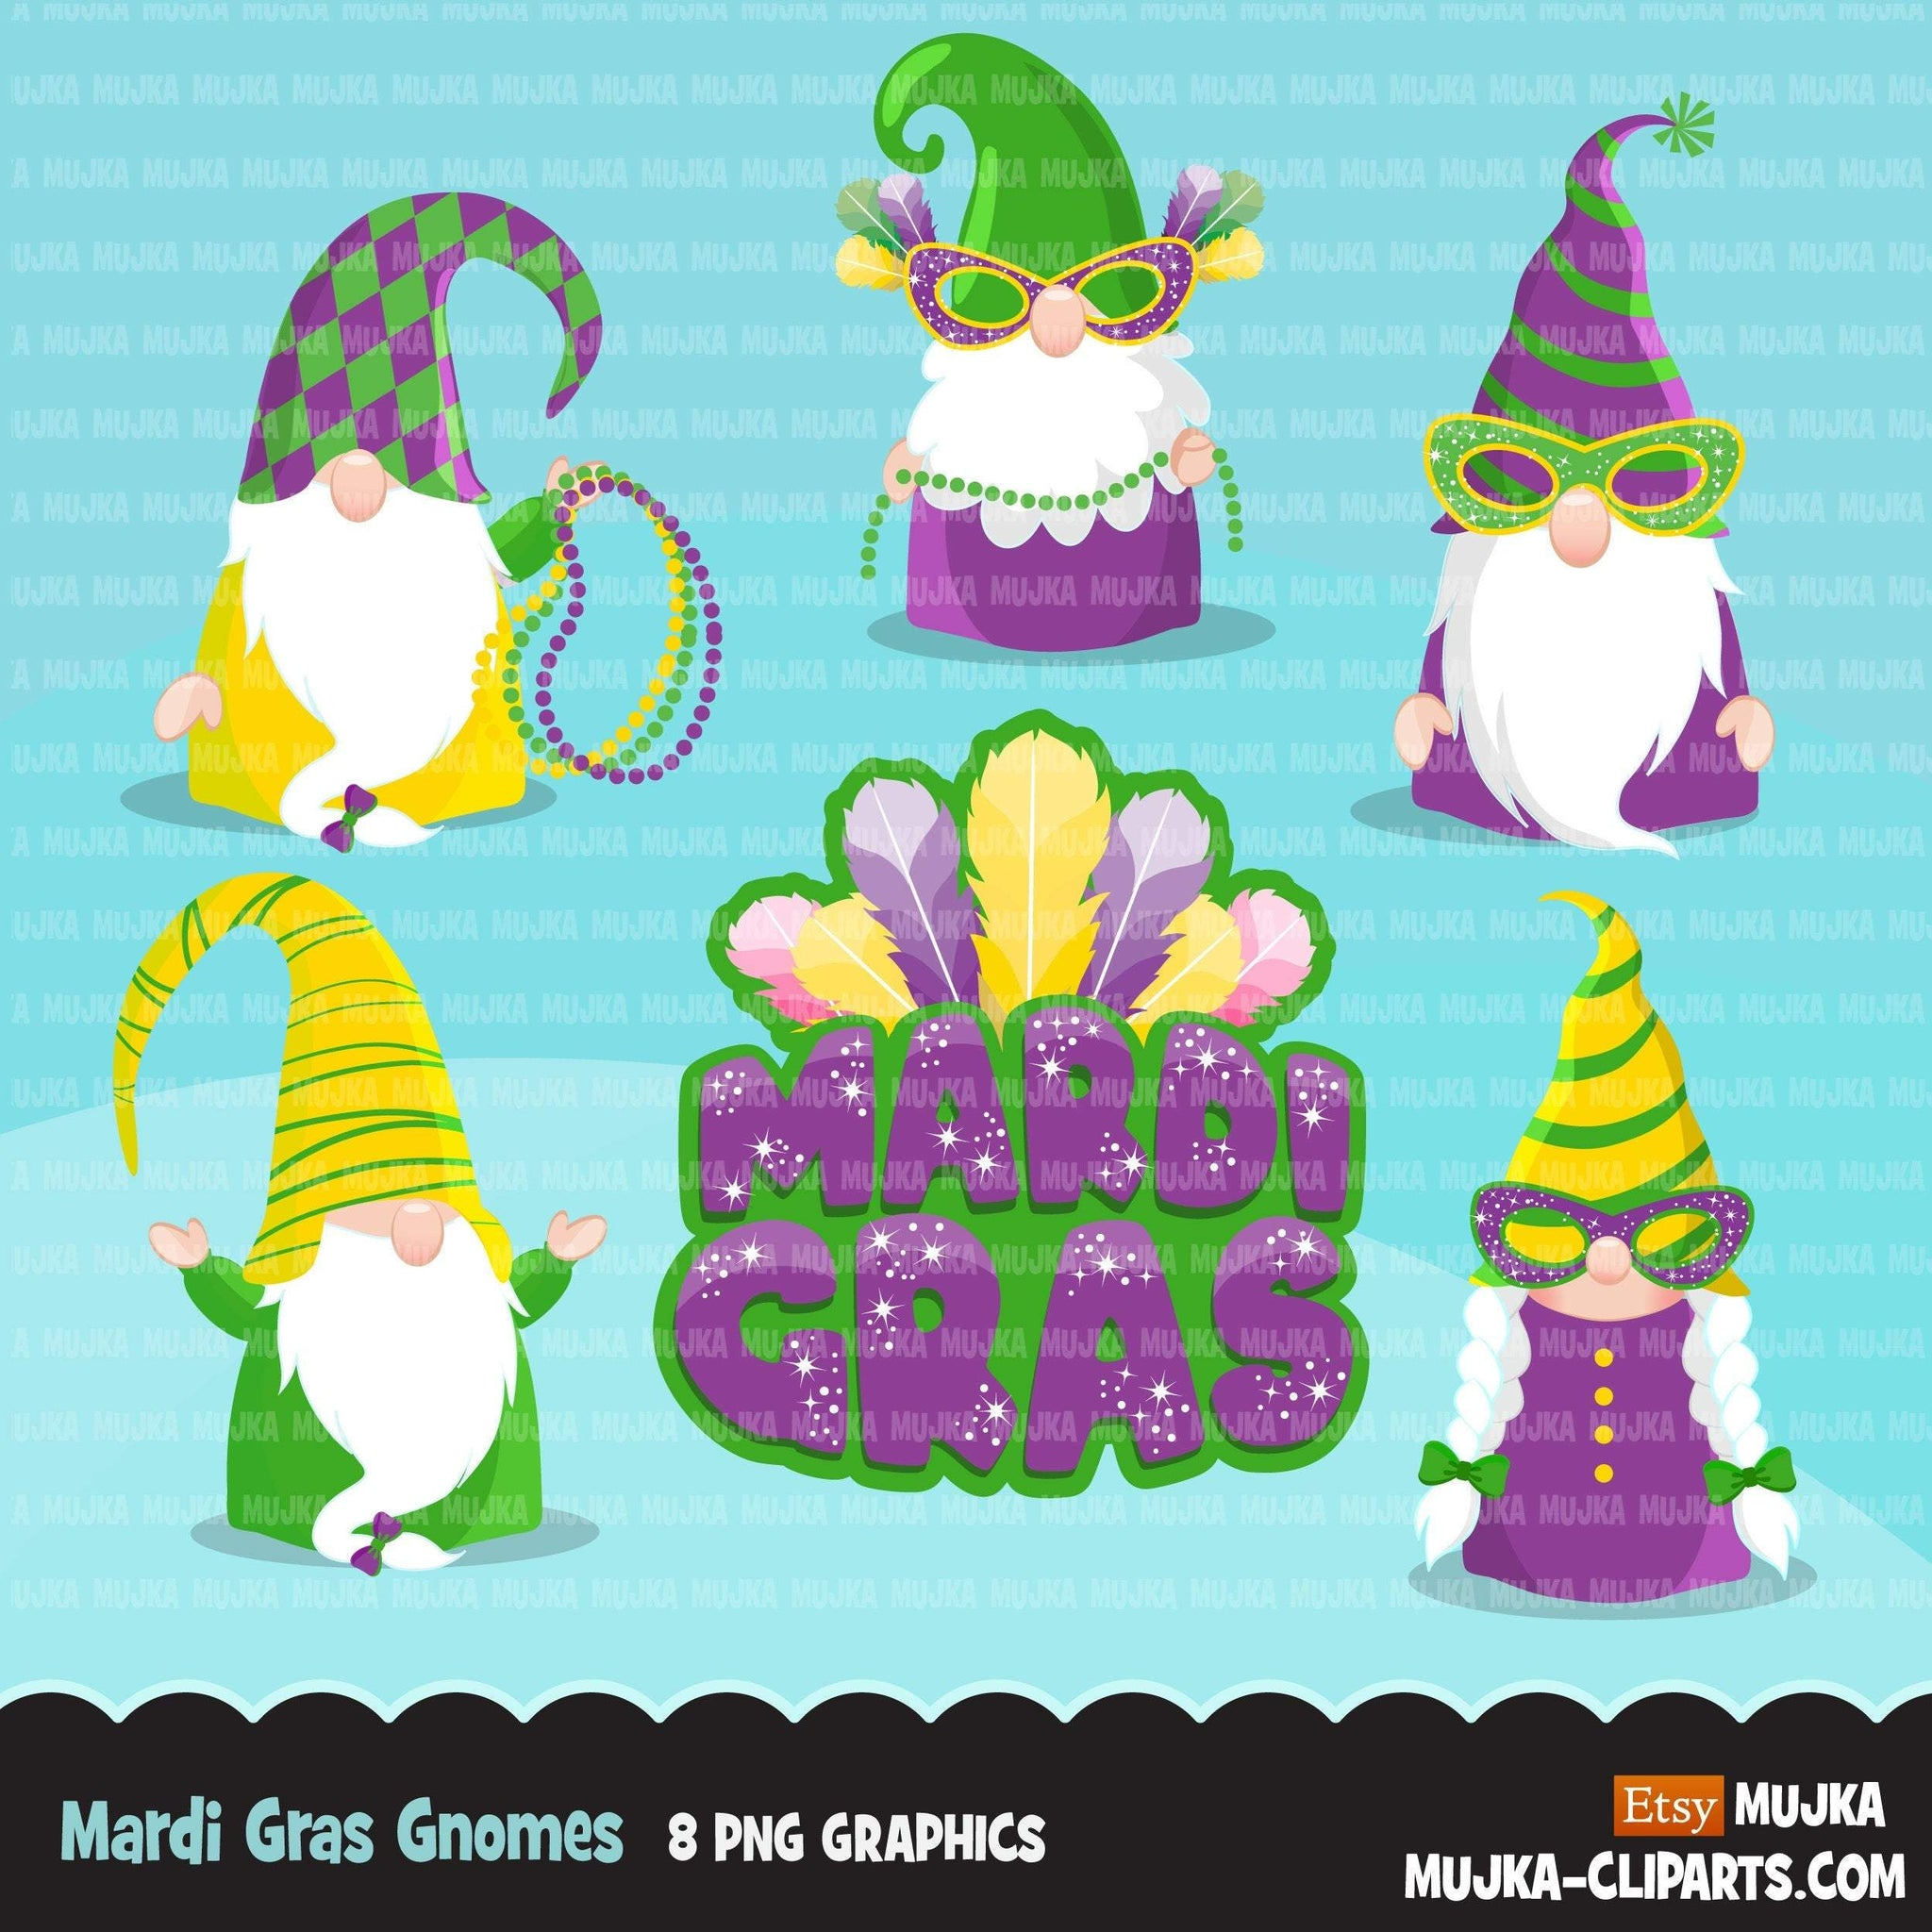 Mardi gras gnomes clipart, carnival clip art, masquerade party, New Orleans, masks, beads